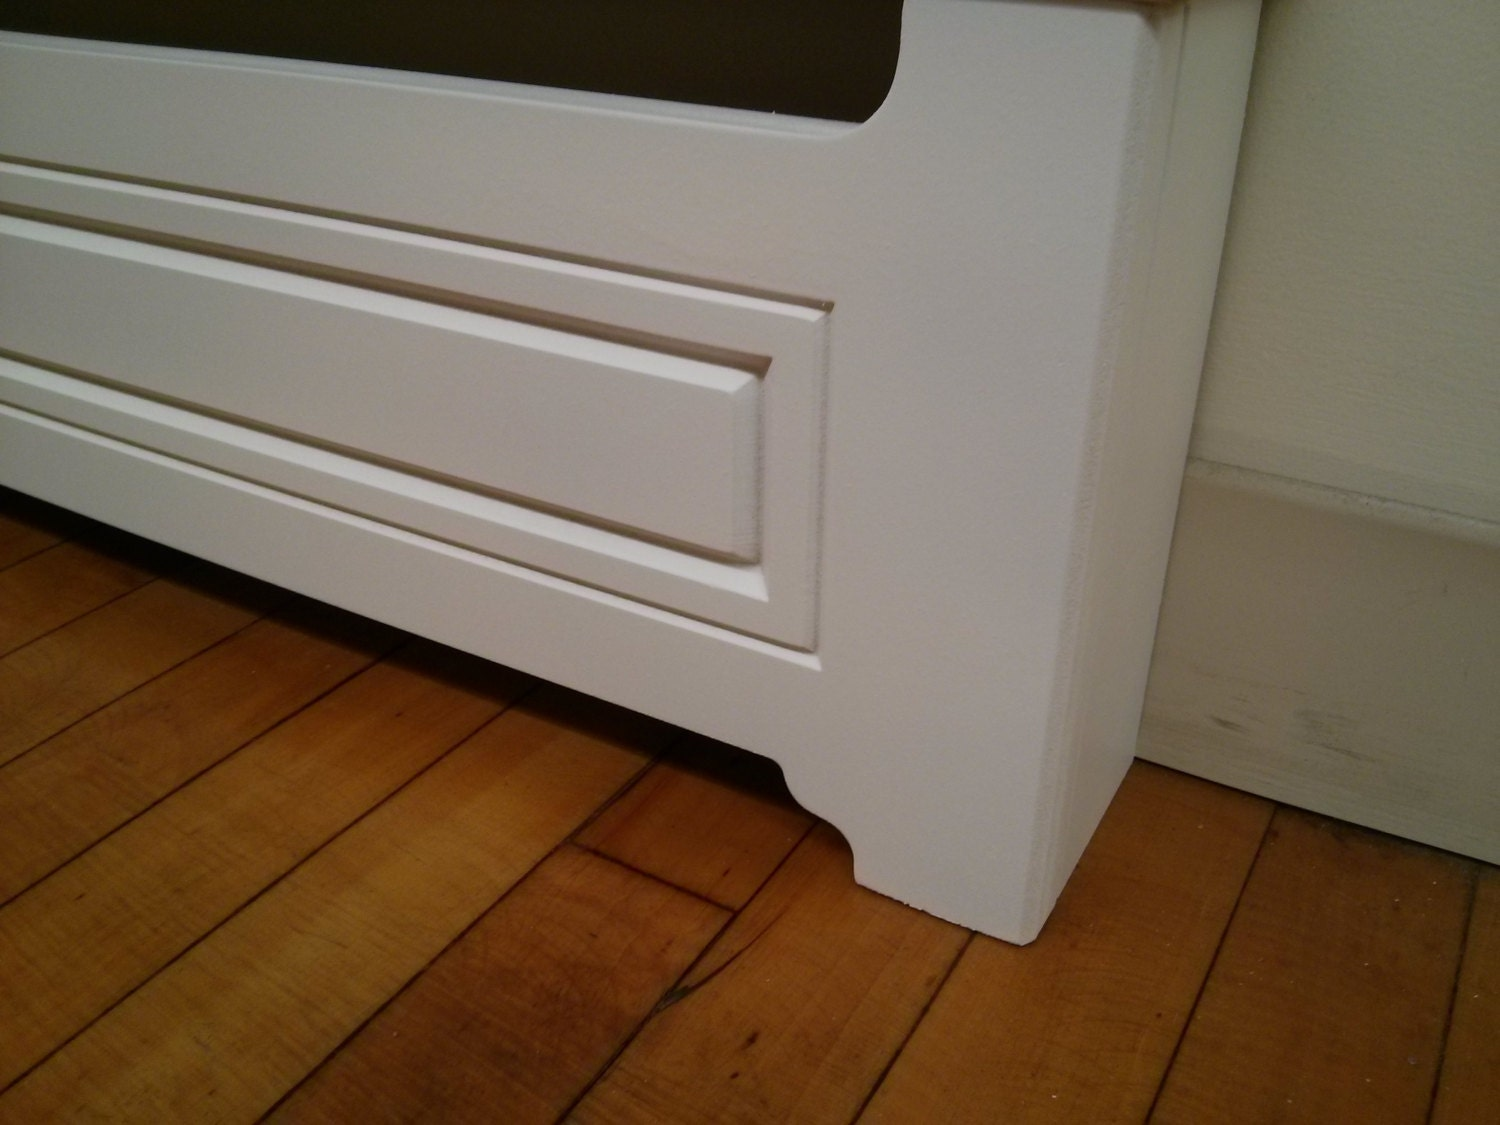 Custom Made To Order Baseboard Heater Covers Double V Raised